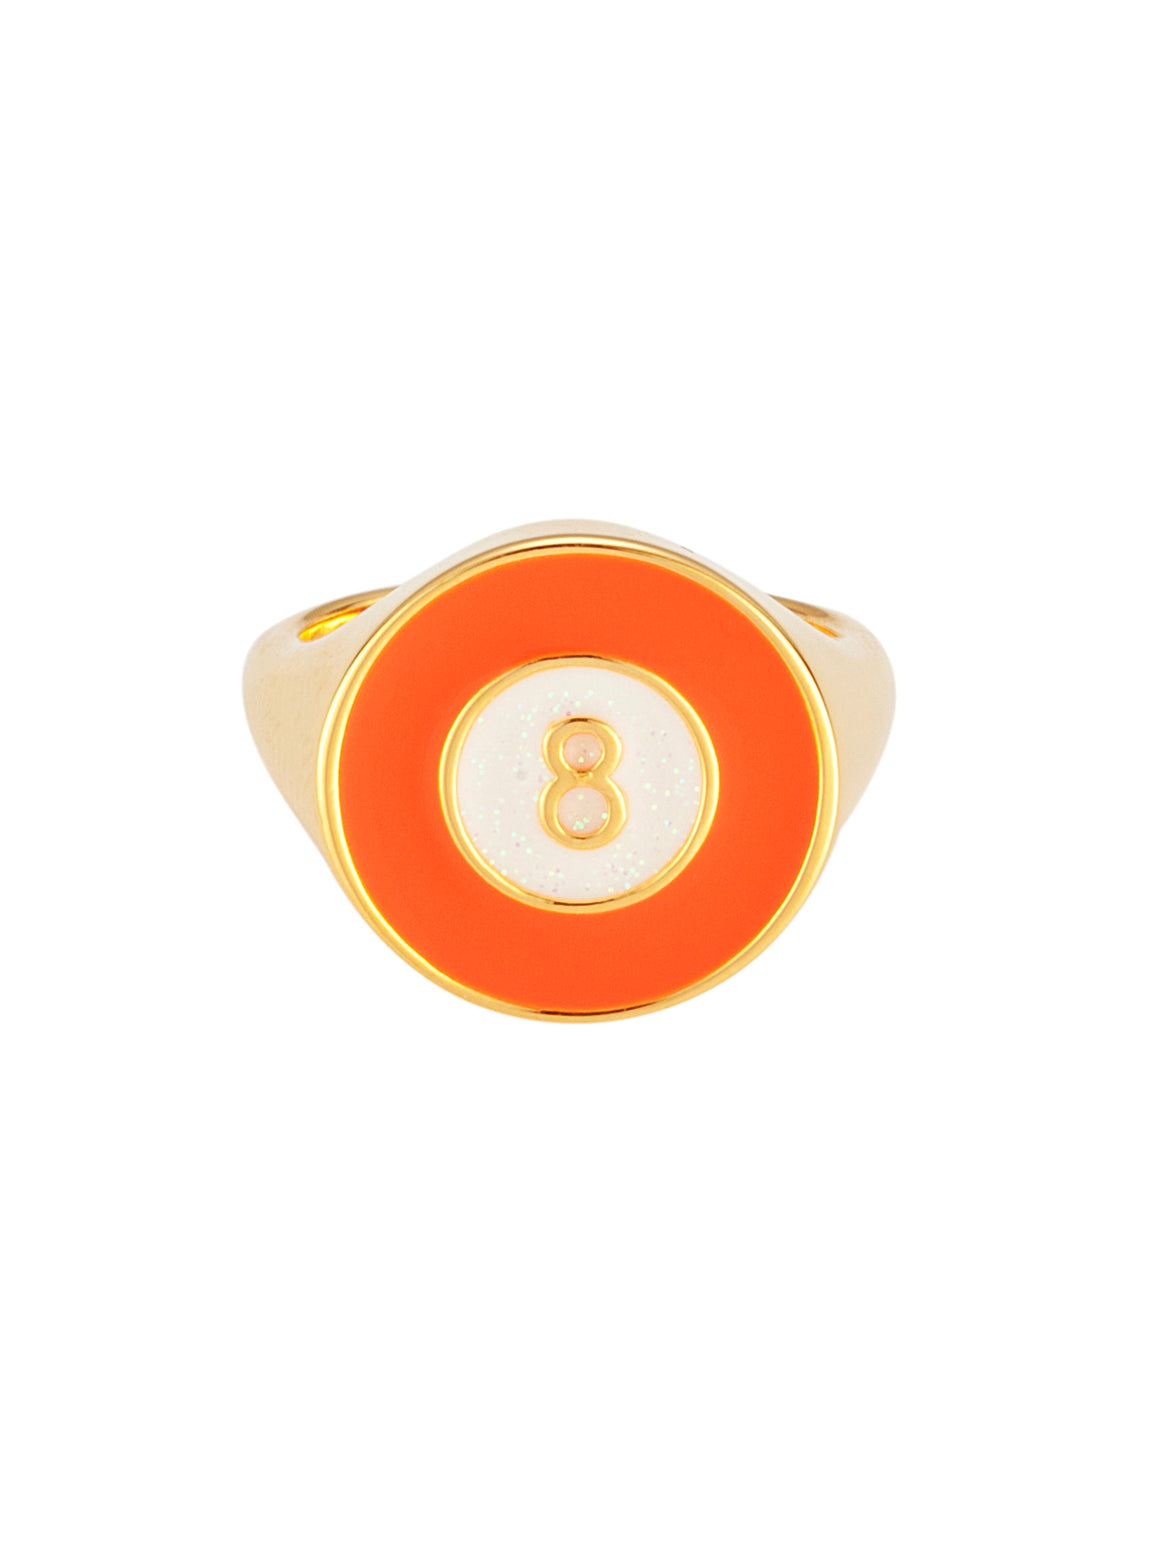 Lucky 8 Orange Gold